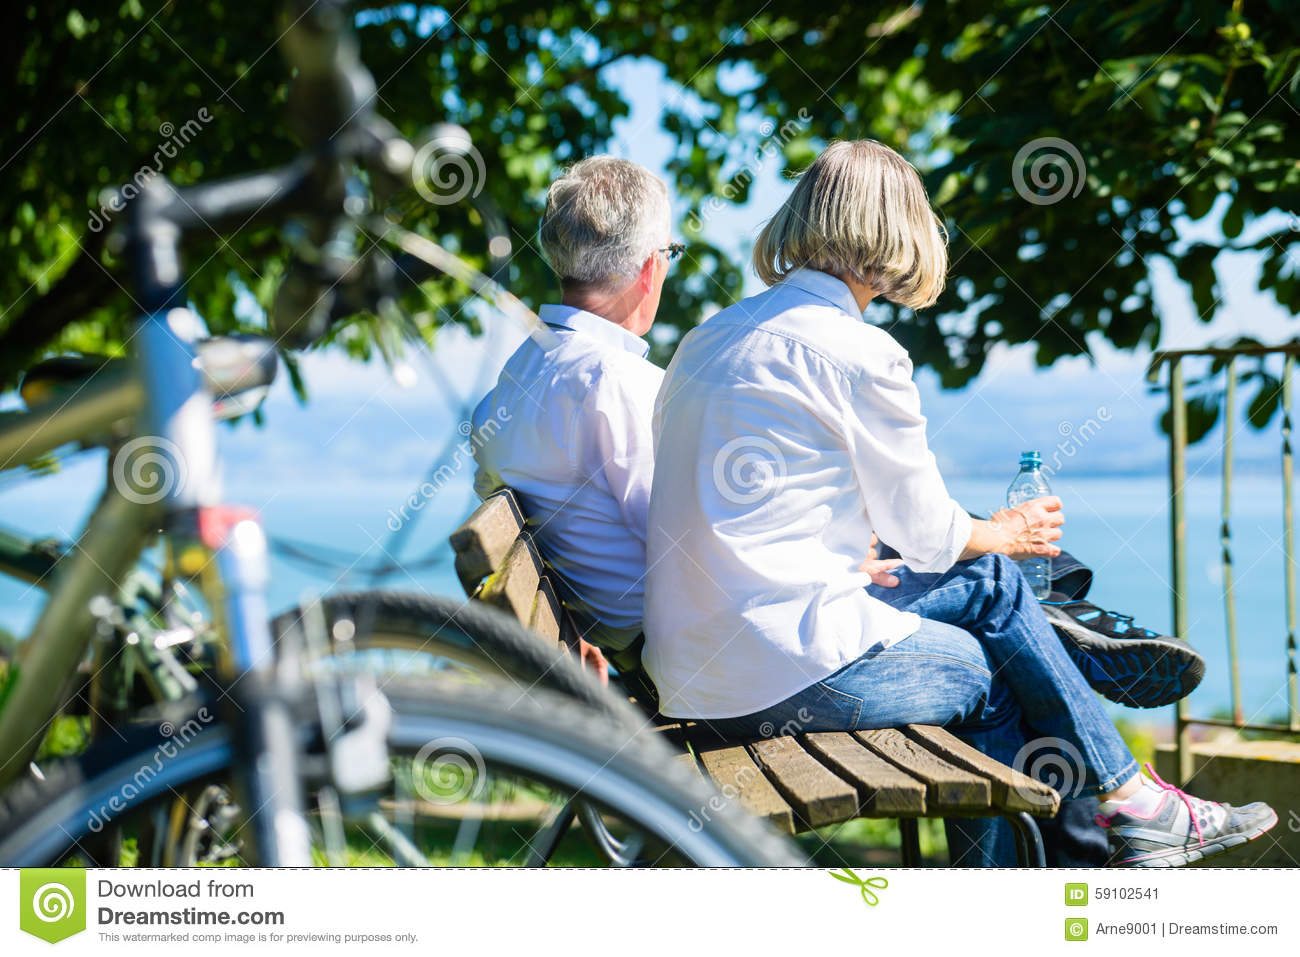 Senior woman and man at rest on bike trip